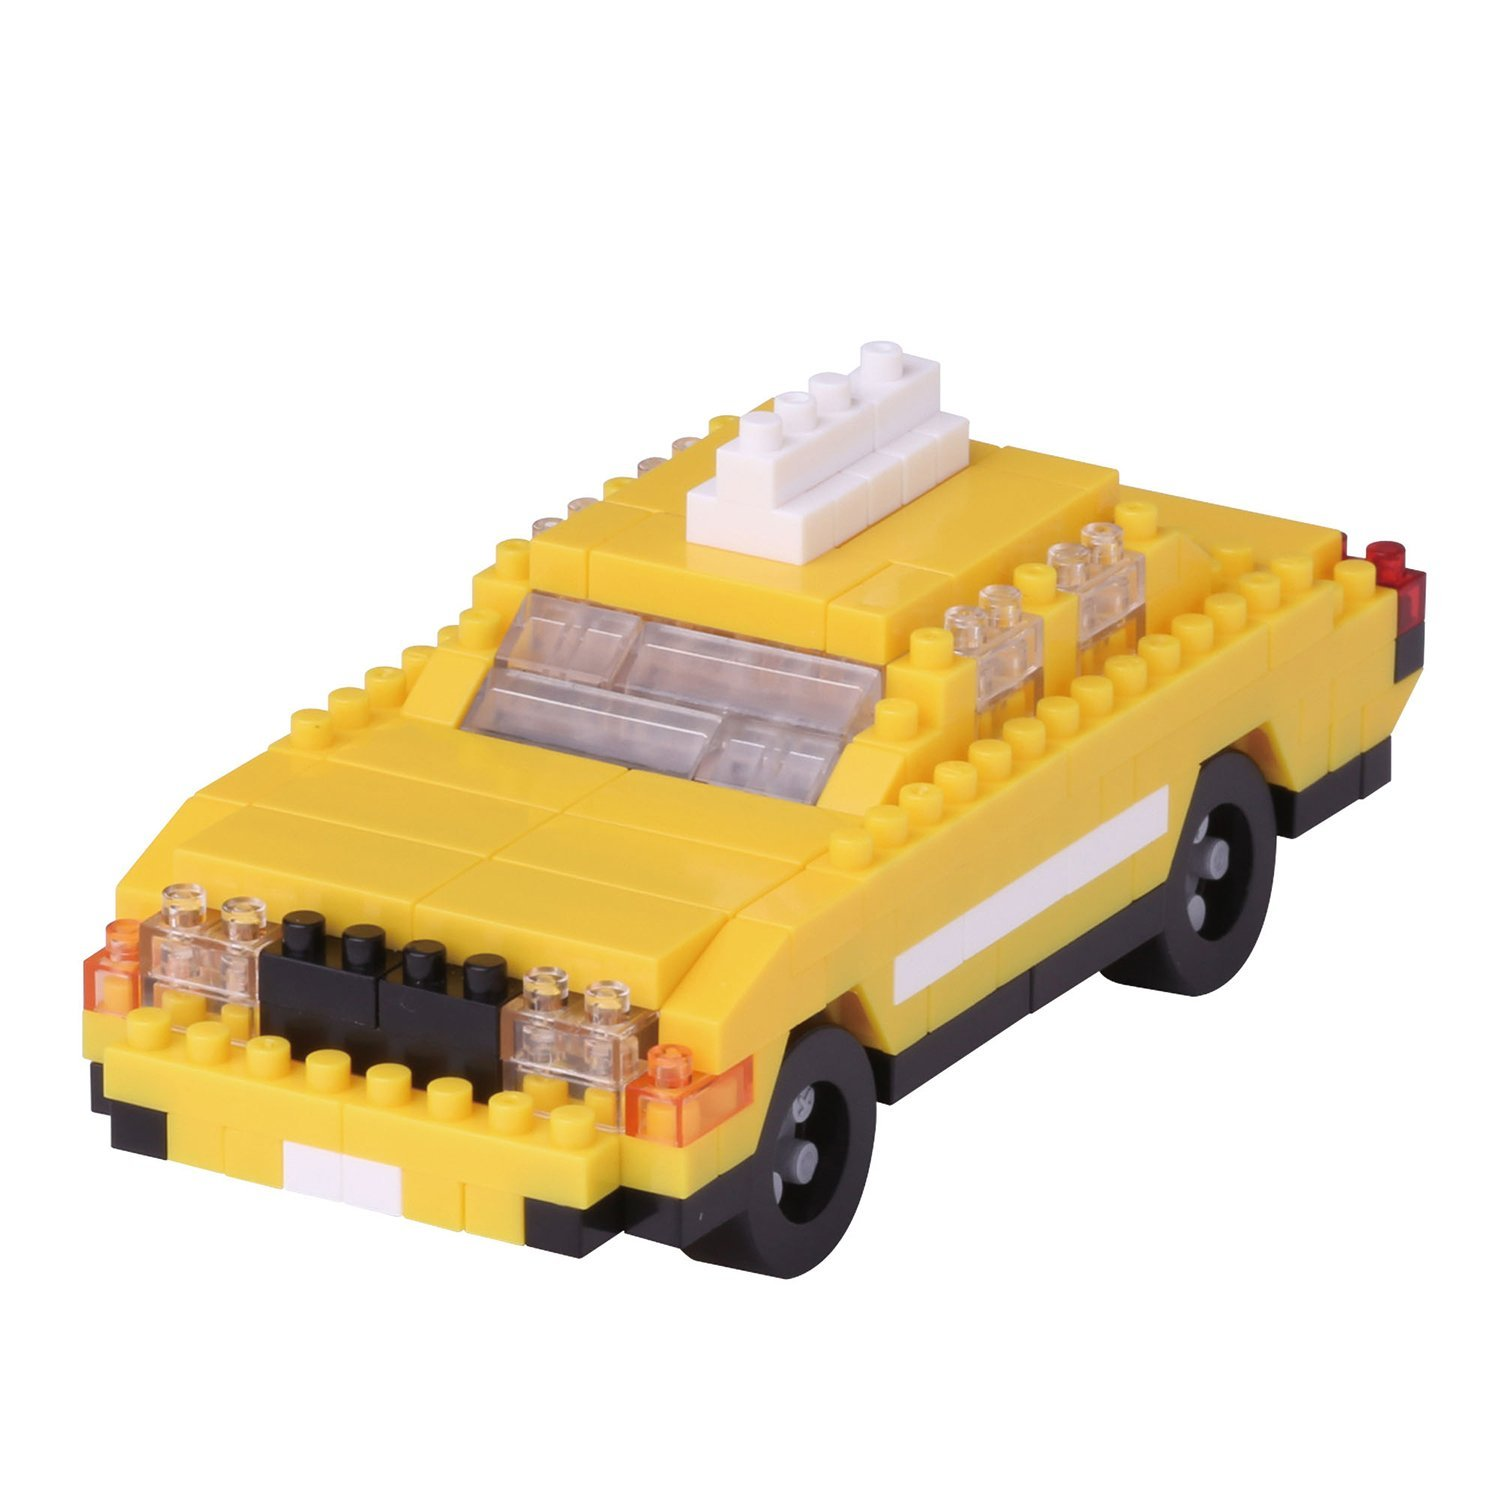 New York Taxi Building Kit, The only way to get around the big city, the classic yellow... by